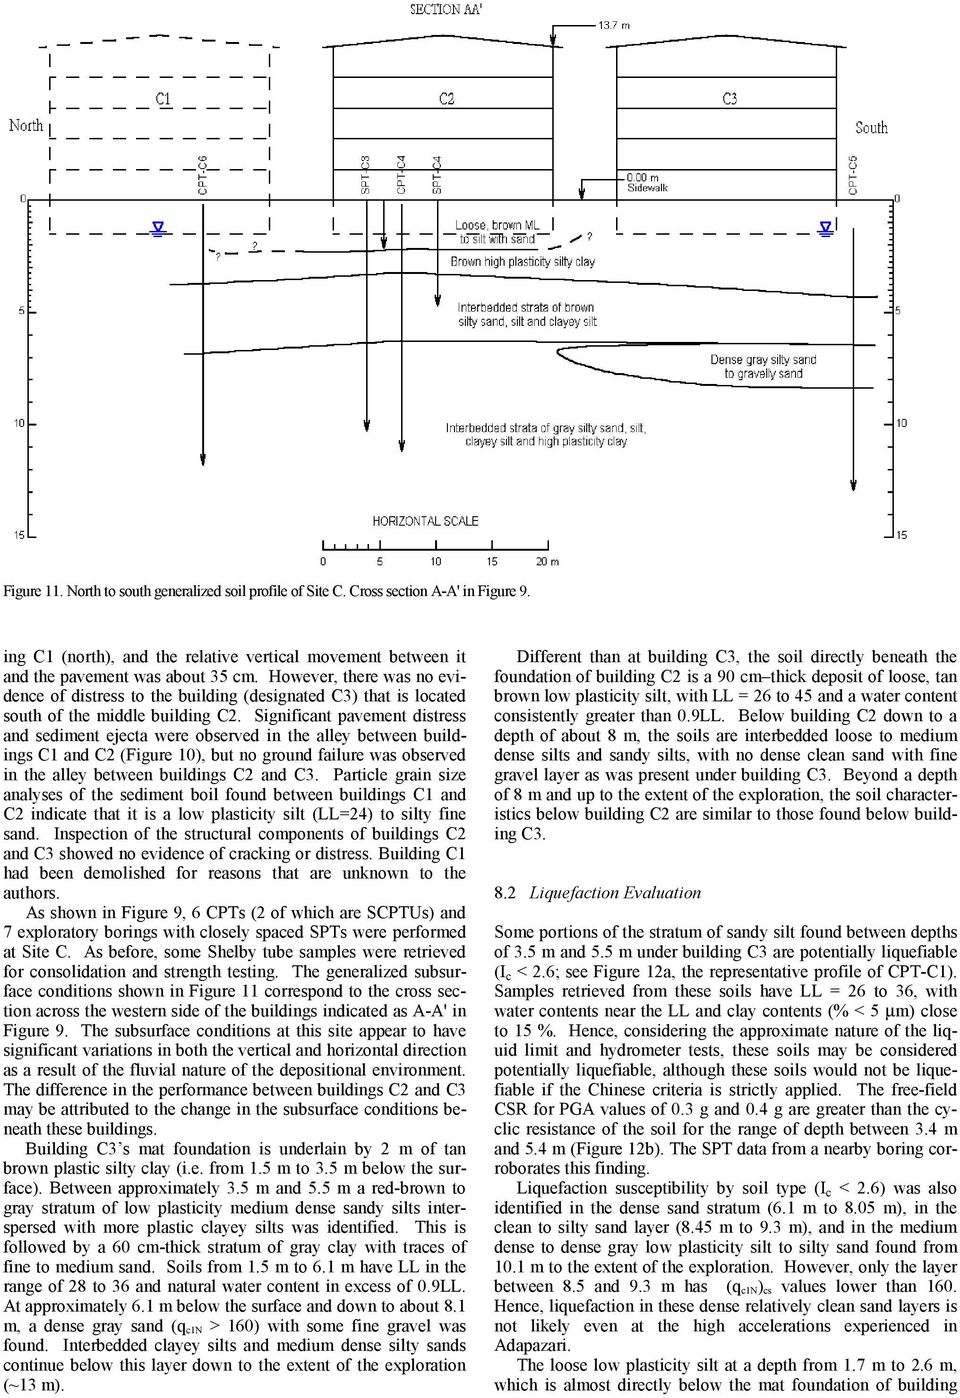 Significant pavement distress and sediment ejecta were observed in the alley between buildings C and C (Figure ), but no ground failure was observed in the alley between buildings C and C.